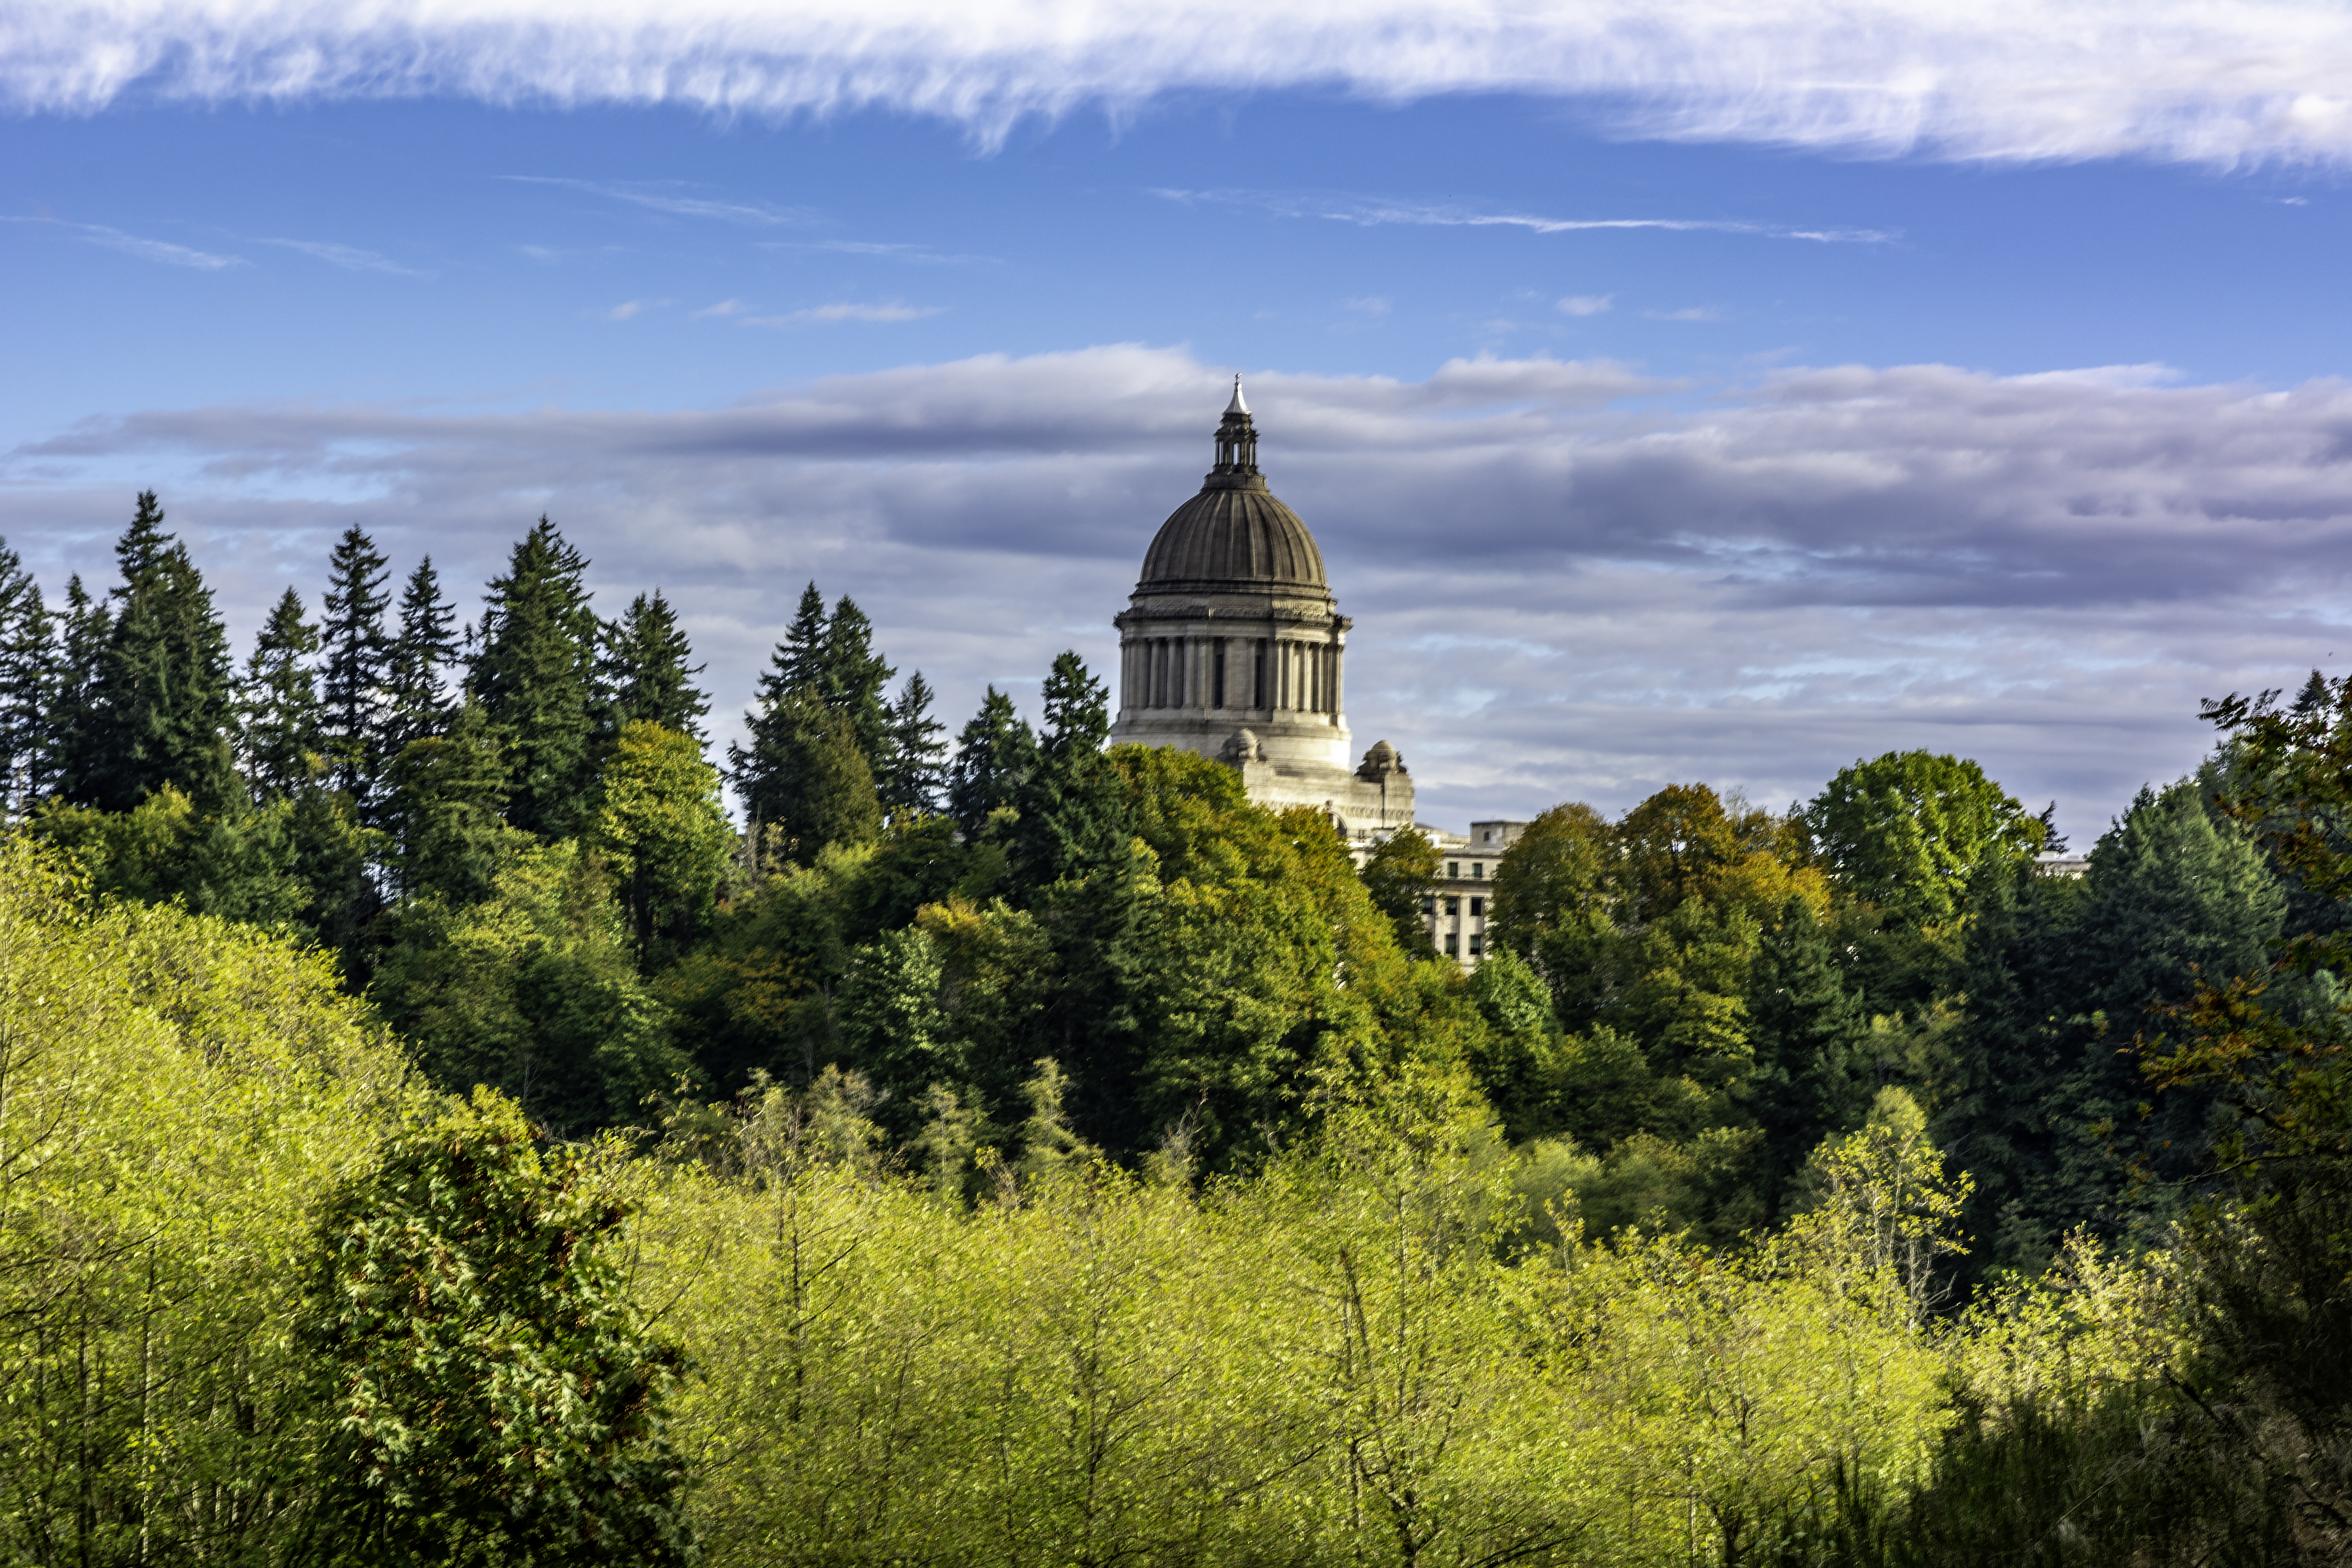 The Washington State Capitol:  Evergreen--The Thirty-Nine Counties of Washington State